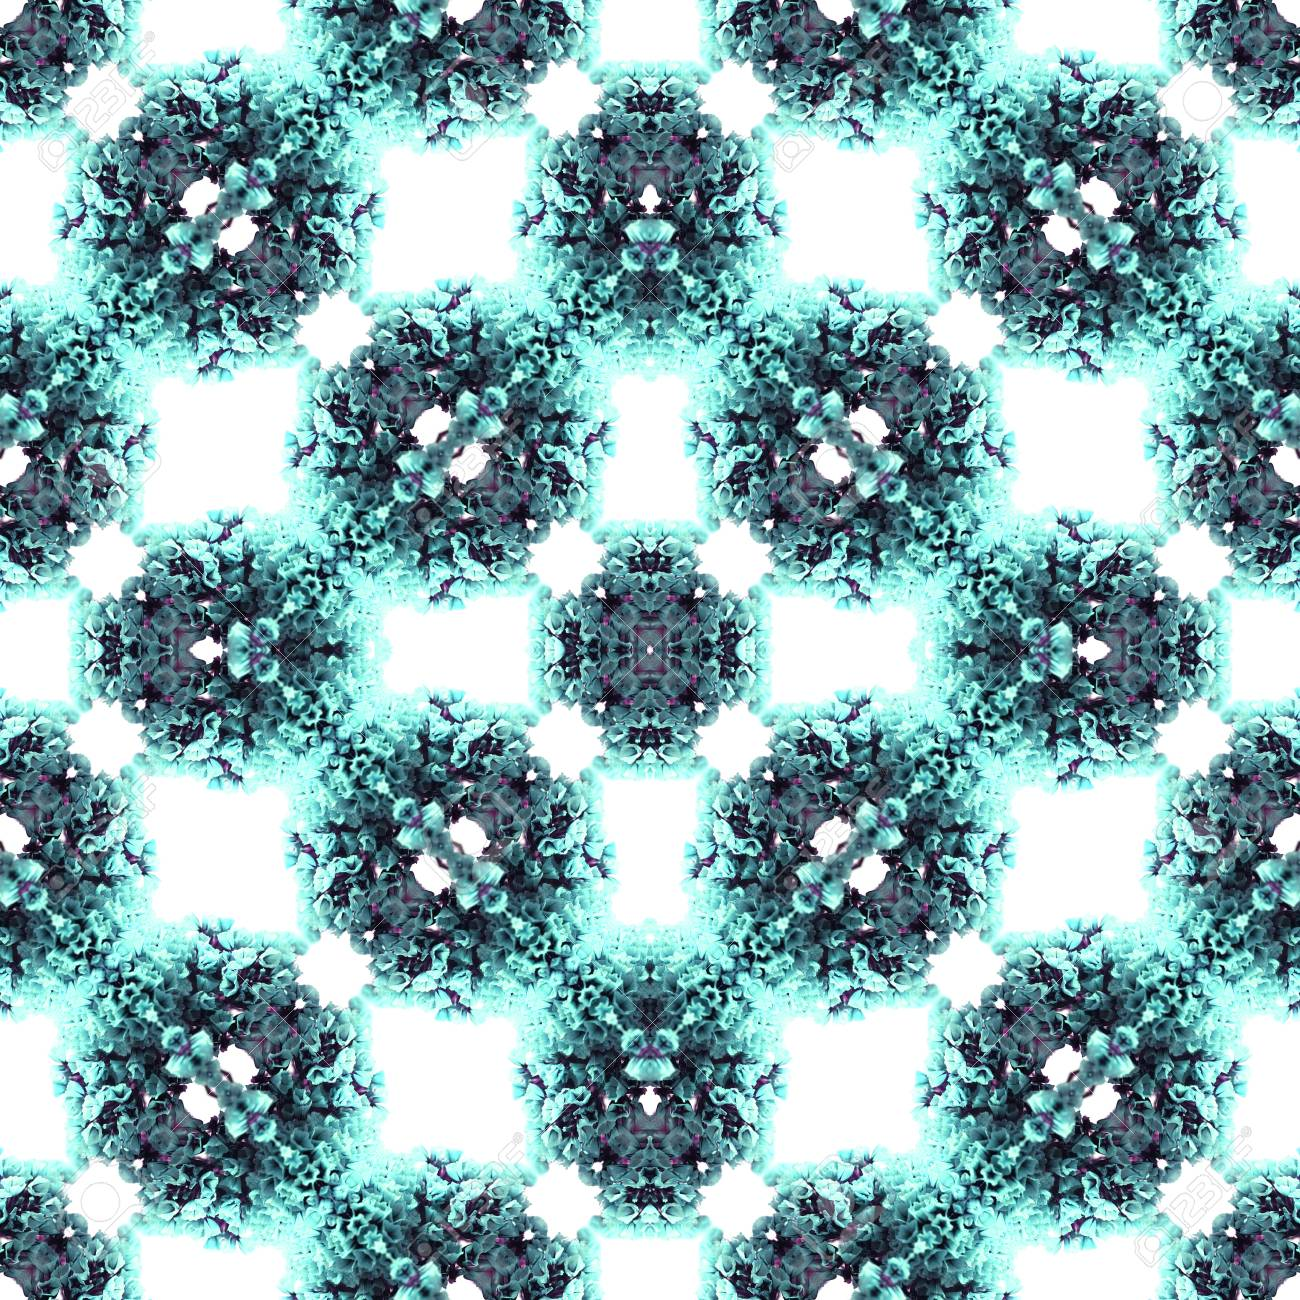 Abstract flowers seamless pattern background. Kaleidoscope from flowers. Hydraulic tile design. - 104074908